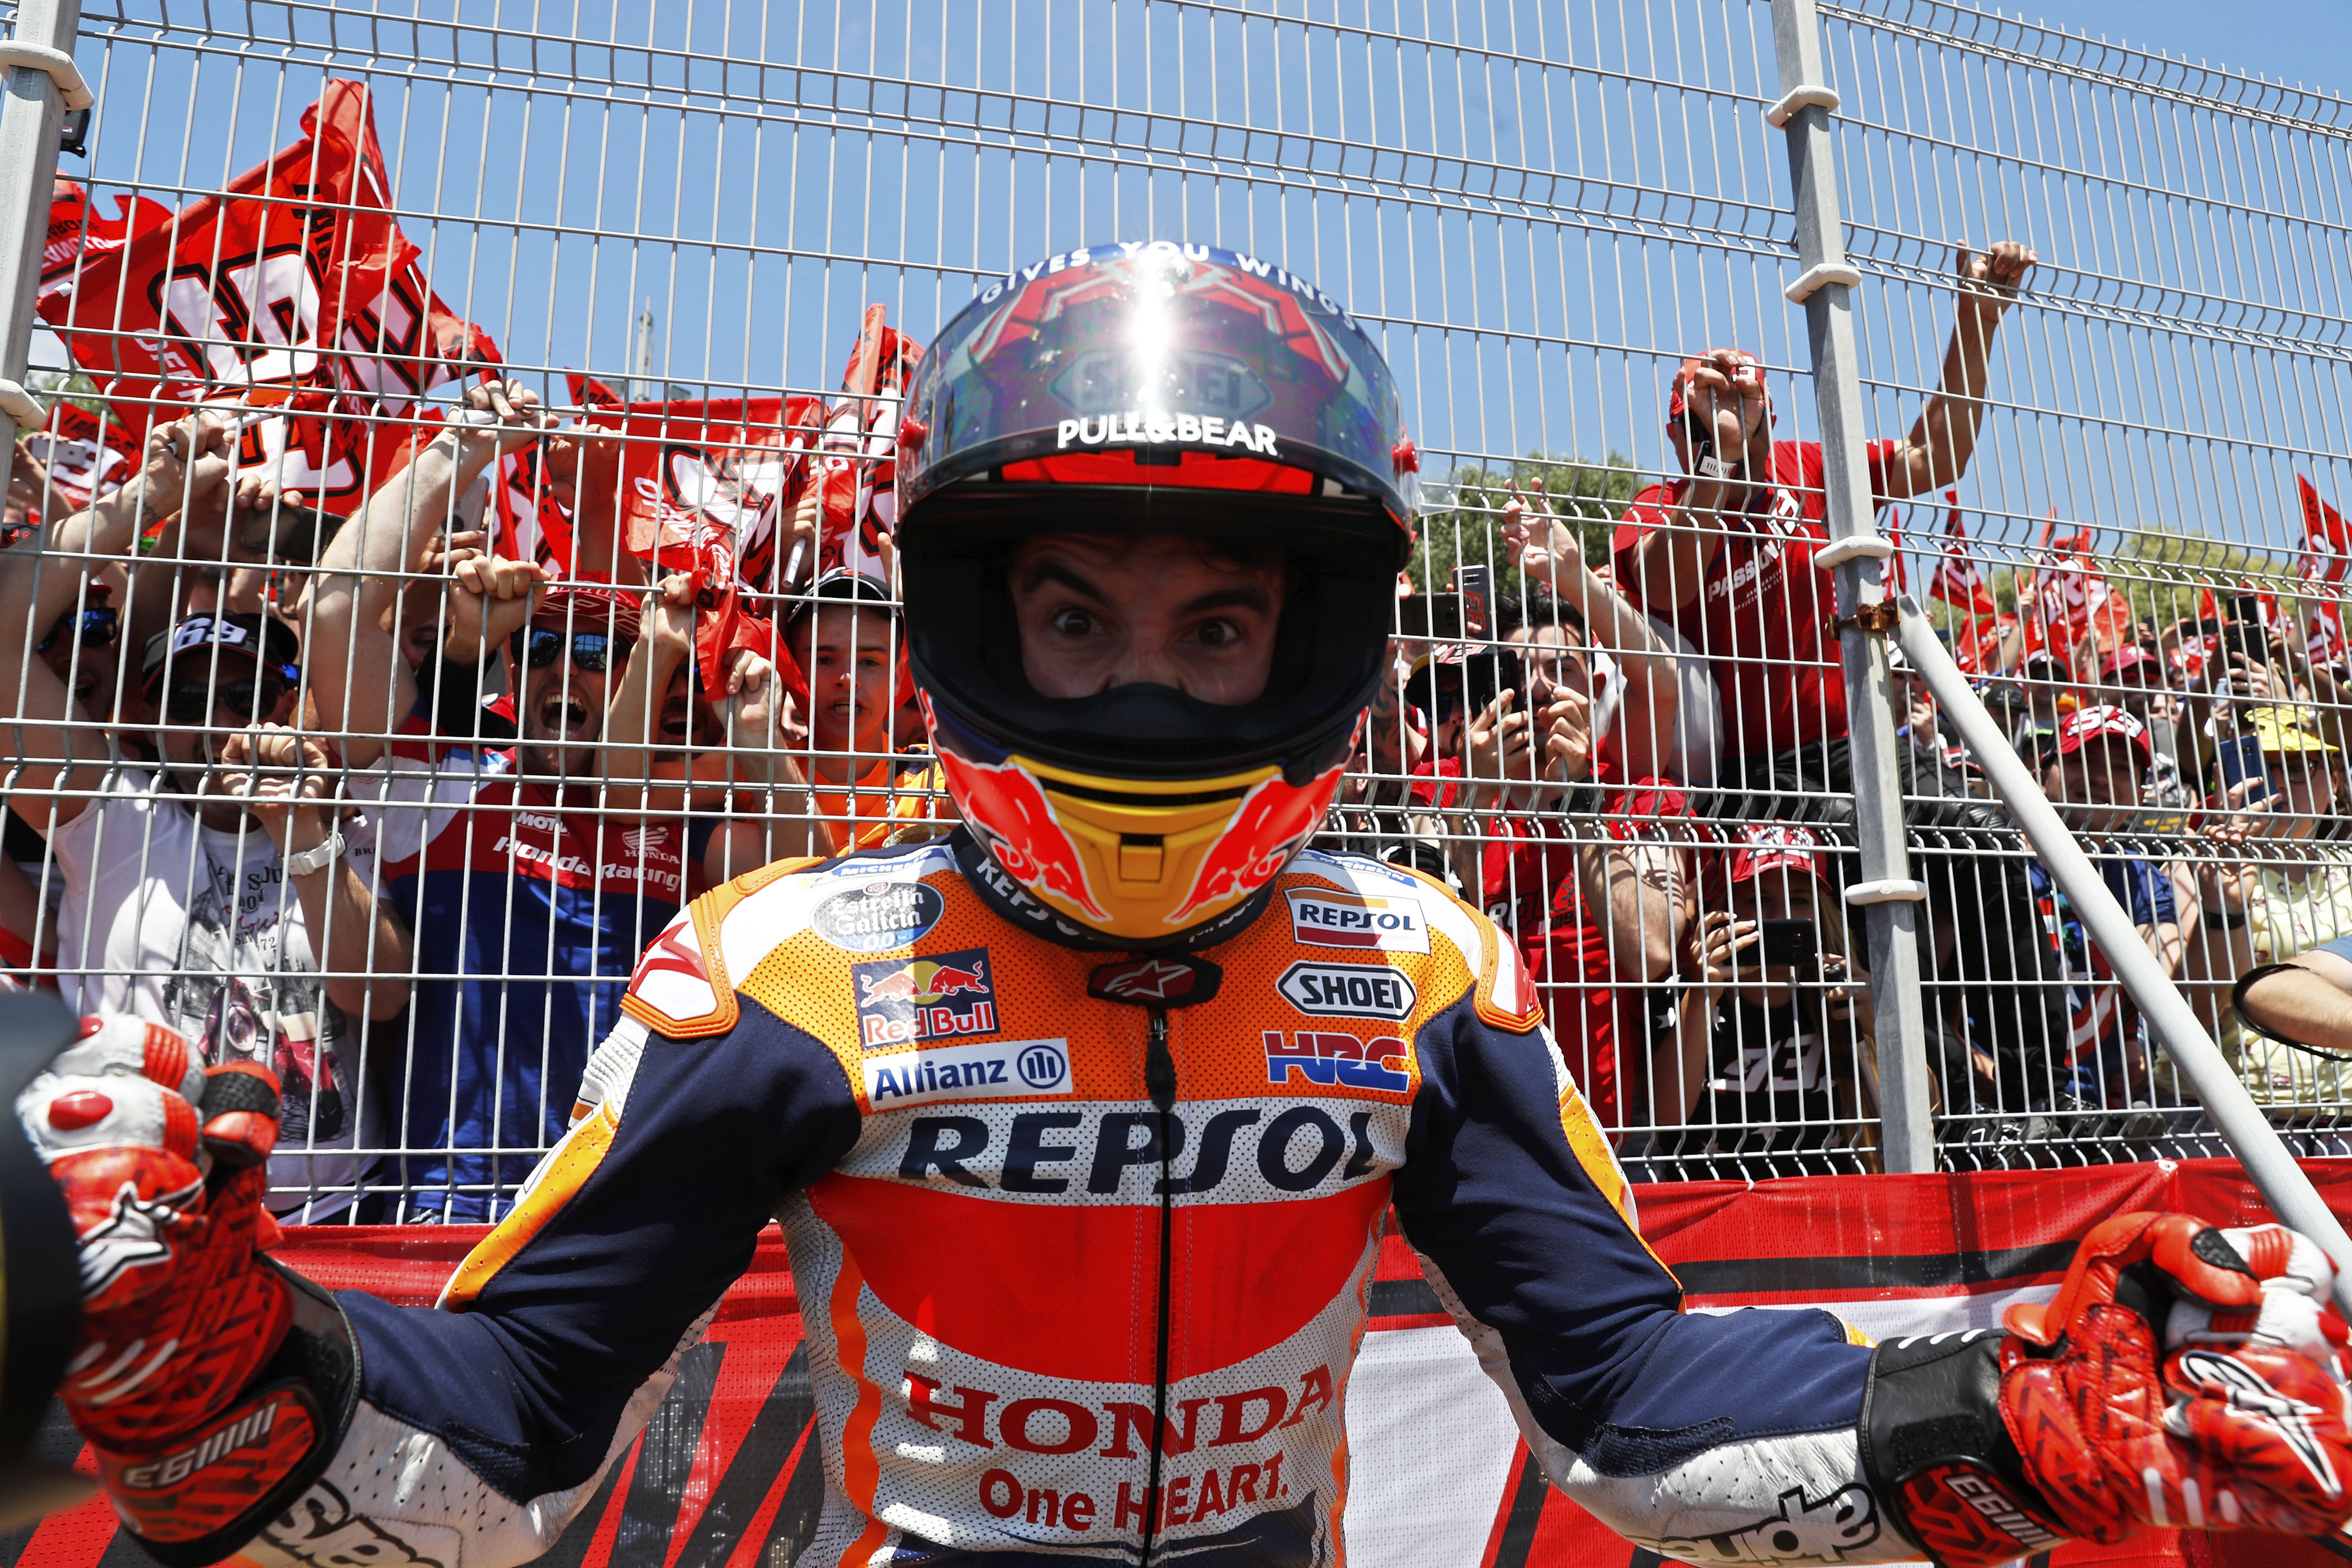 MotoGP rider Marc Marquez of Spain, center, celebrates with fans by the side of the track after winning the Spanish Motorcycle Grand Prix at the Angel Nieto racetrack in Jerez de la Frontera, Spain, Sunday, May 5, 2019. (AP Photo/Miguel Morenatti)